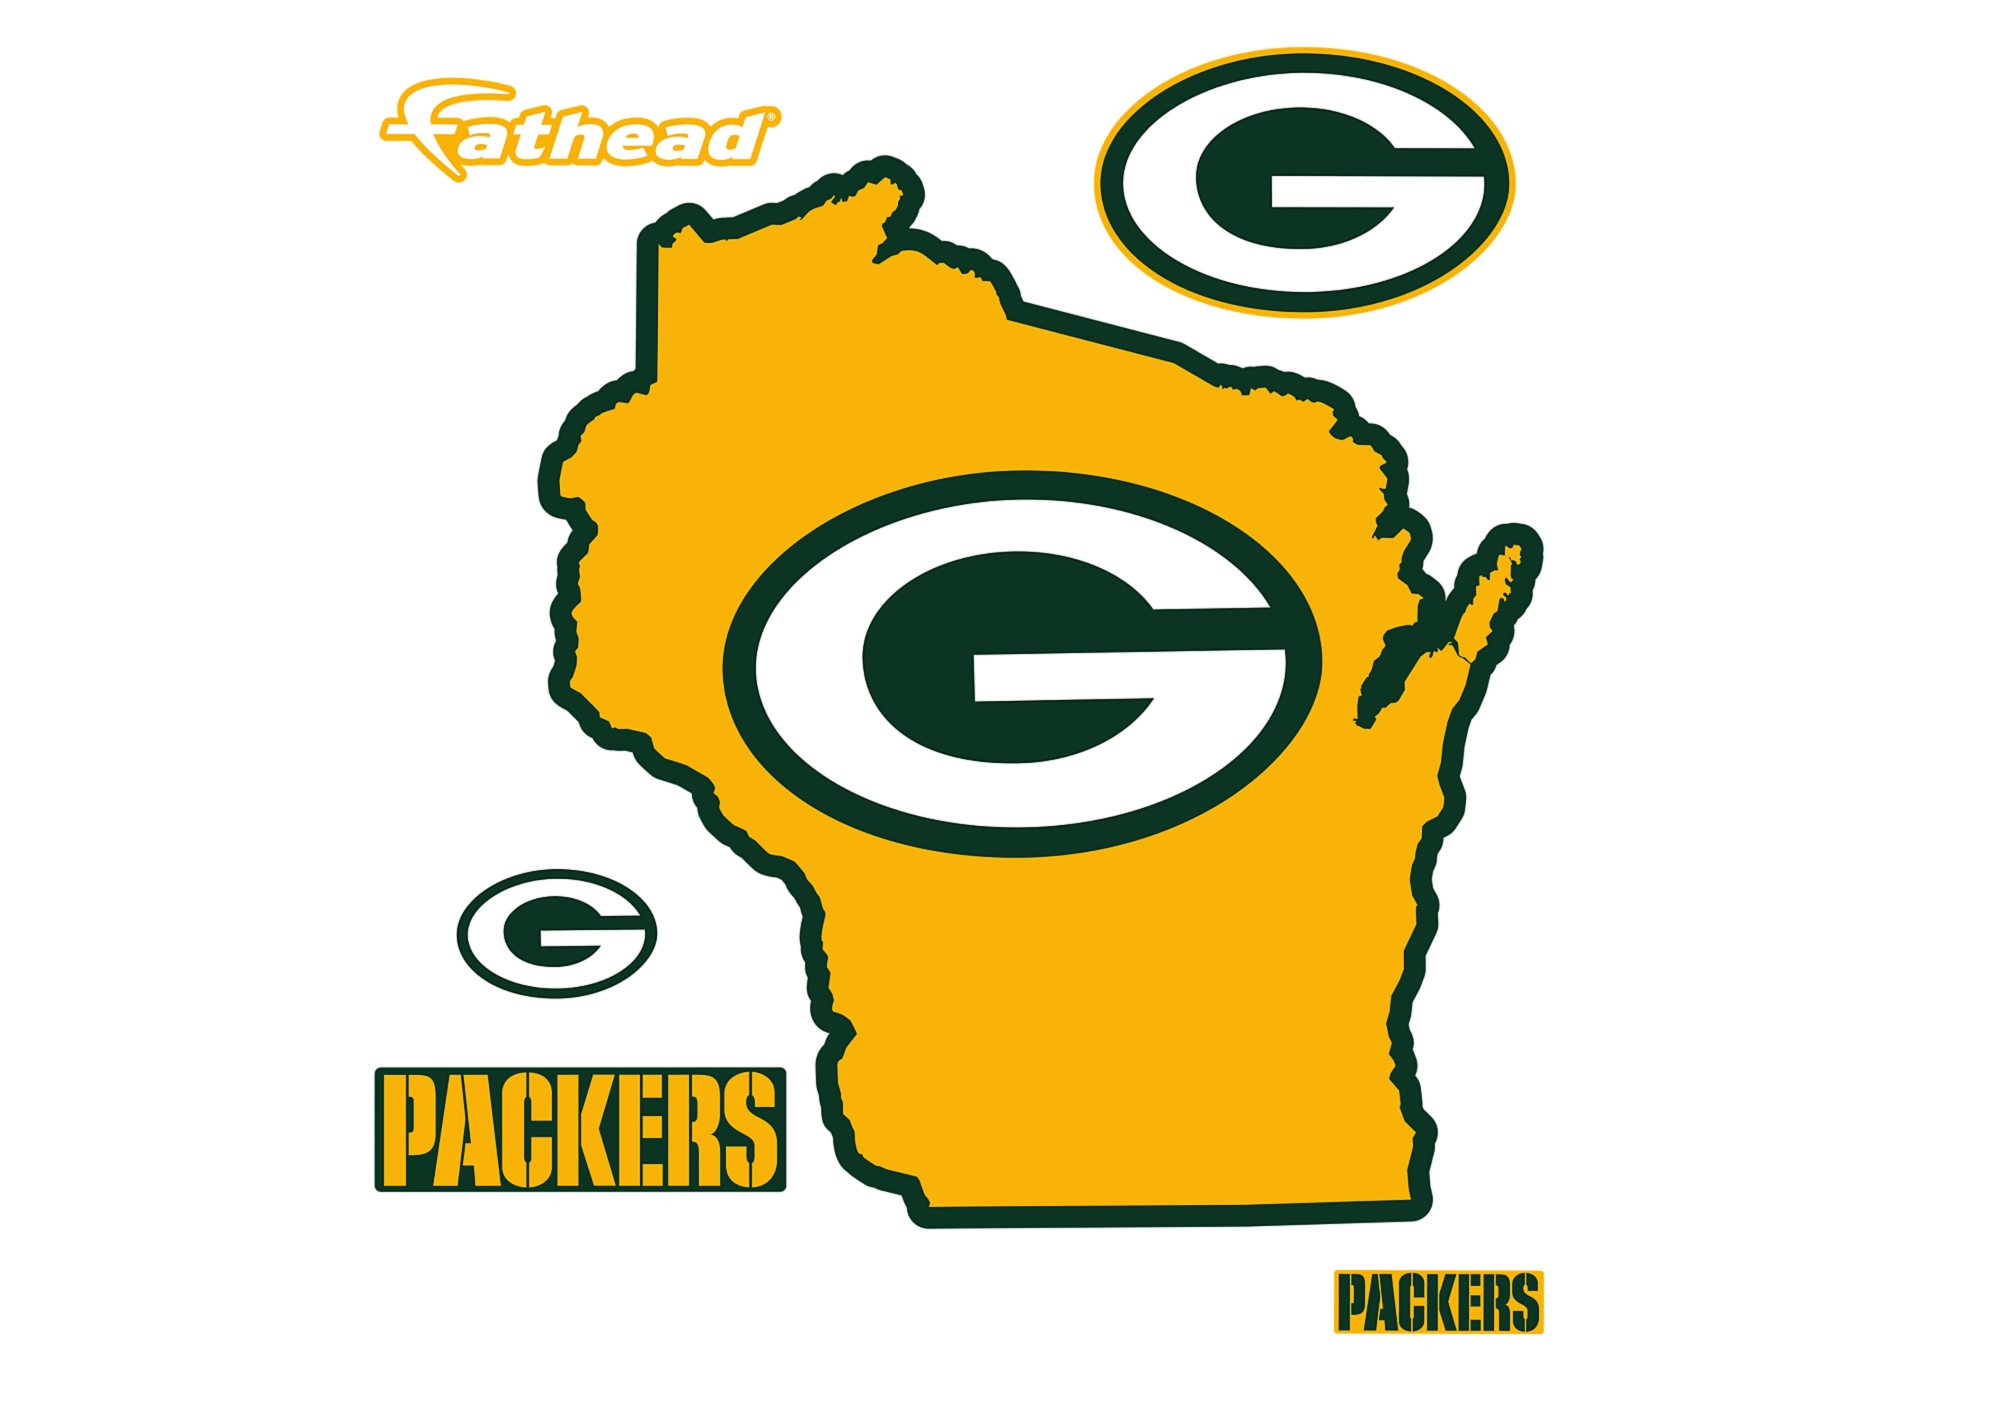 hight resolution of 4225x3000 elegant green bay packers logo images 1 14 14014b nfl 6628